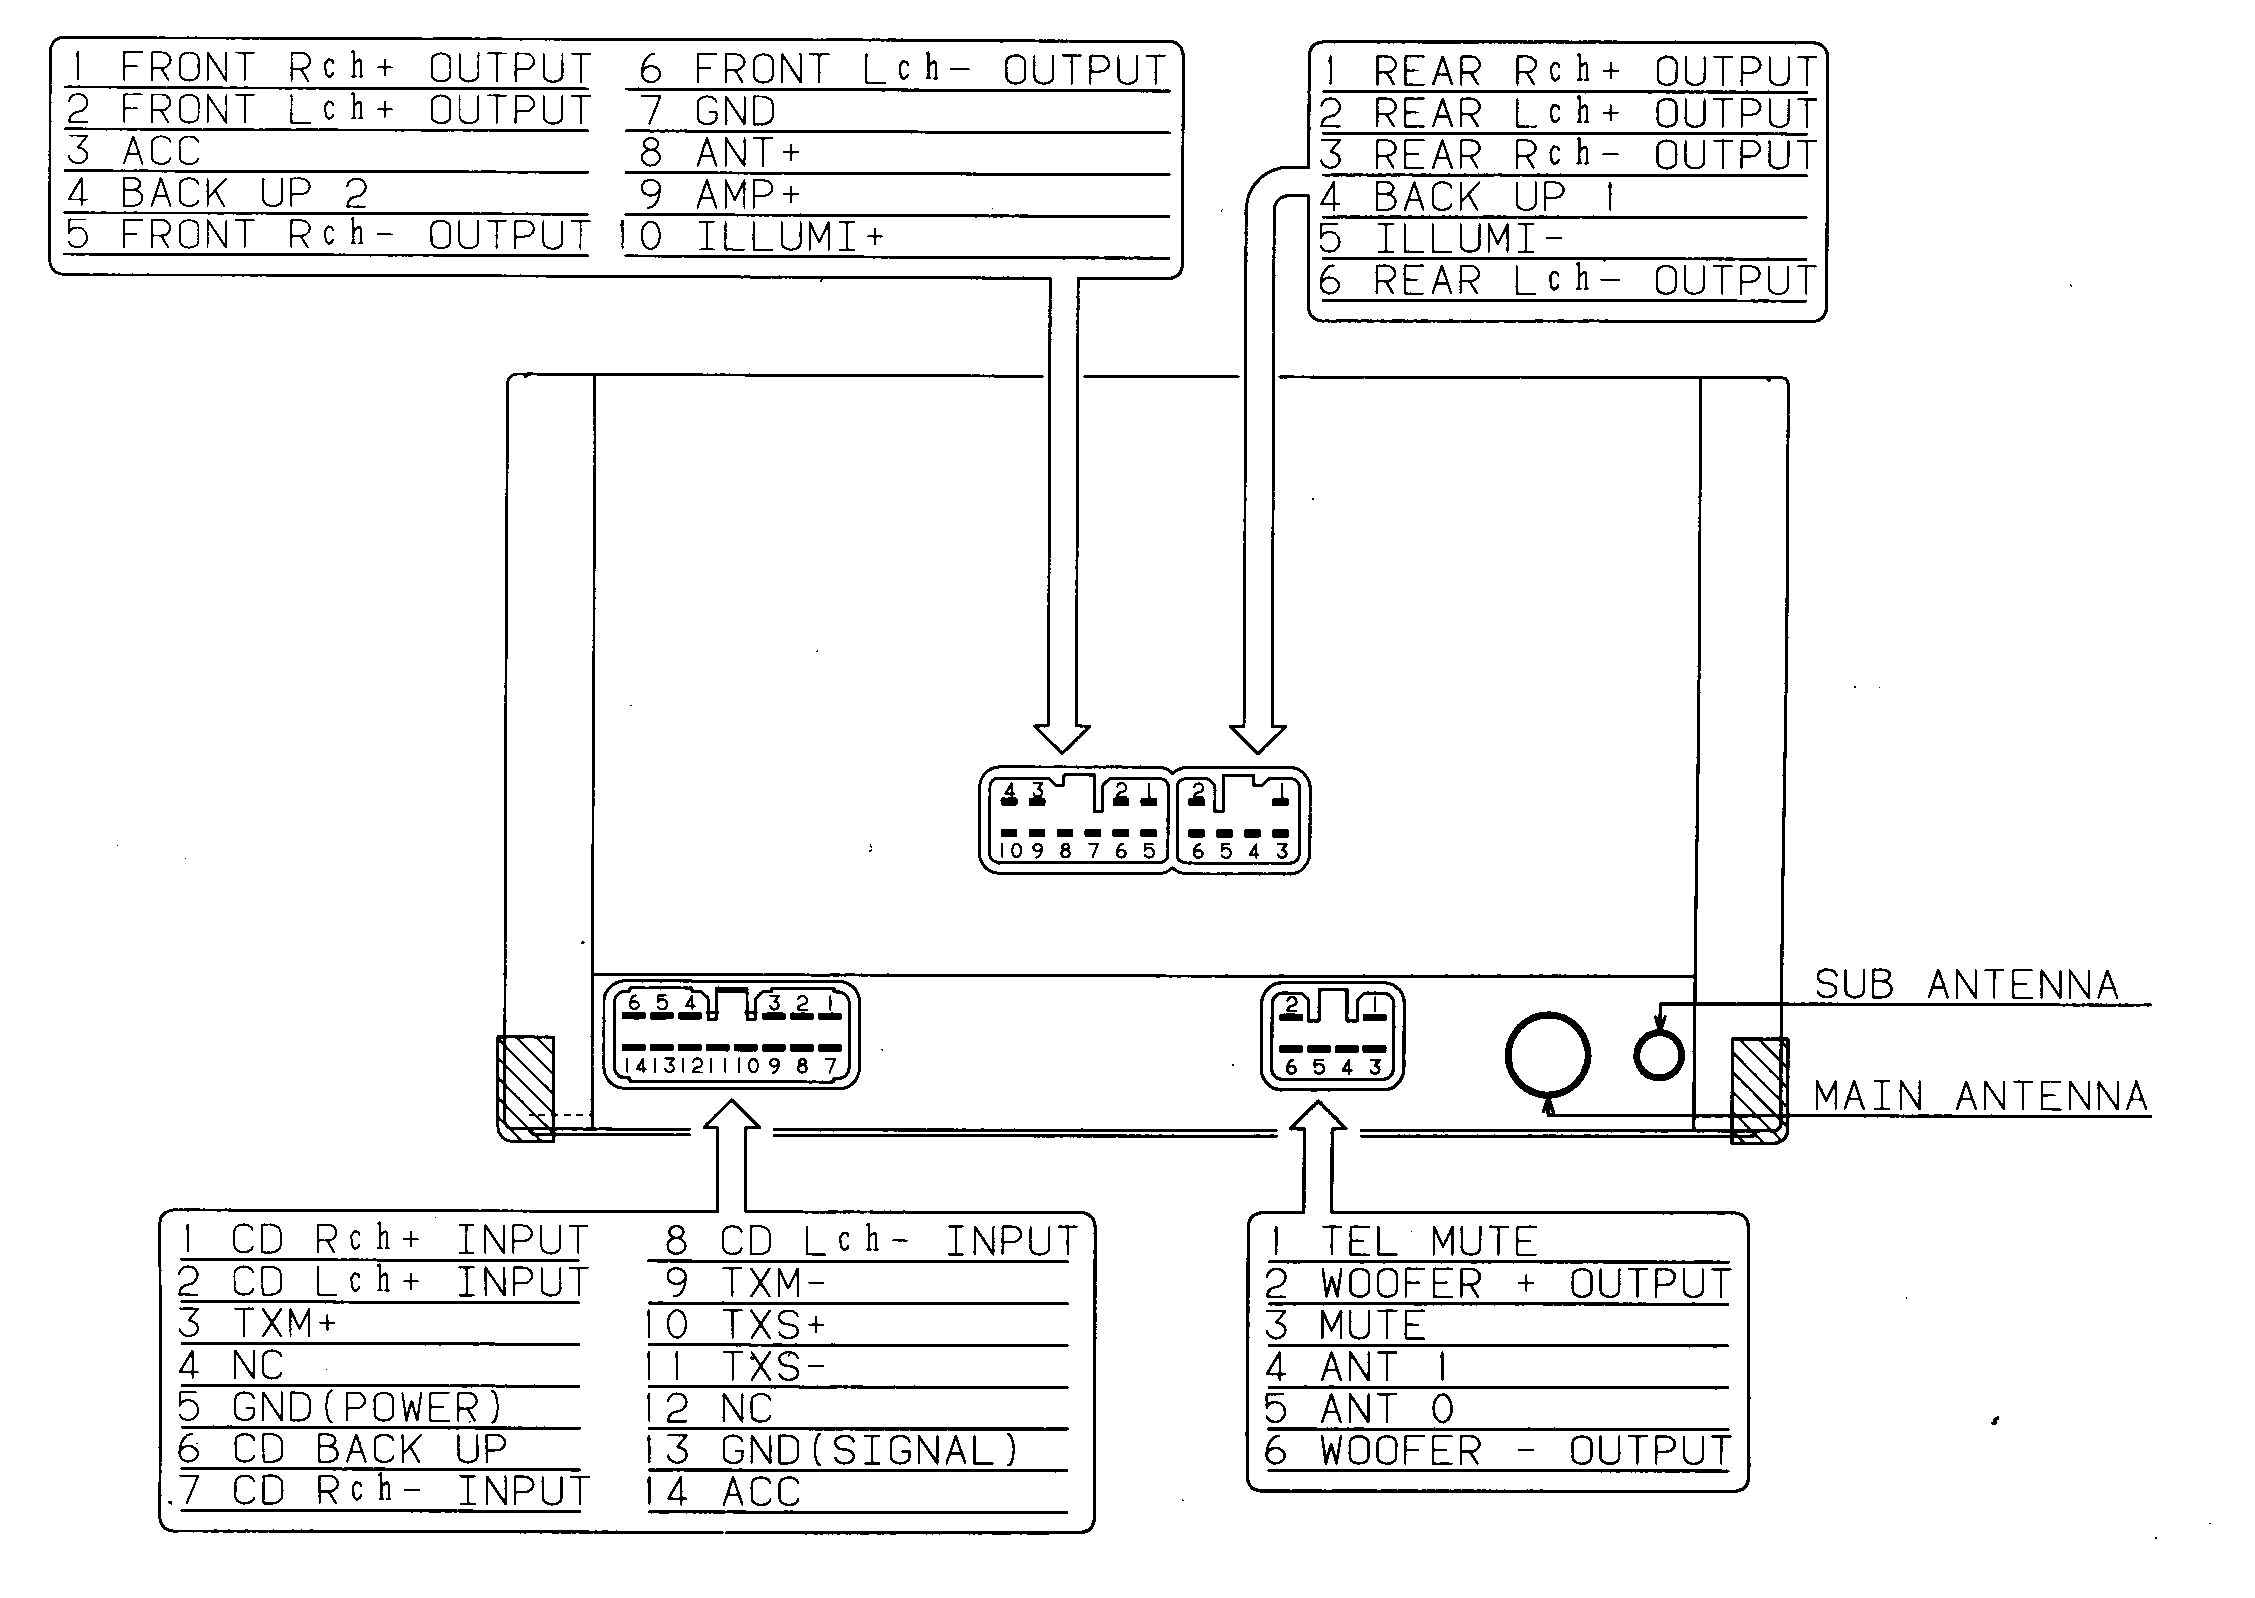 2005 Chevy Avalanche Stereo Wiring Diagram 02 Radio Gmc Envoy Bose